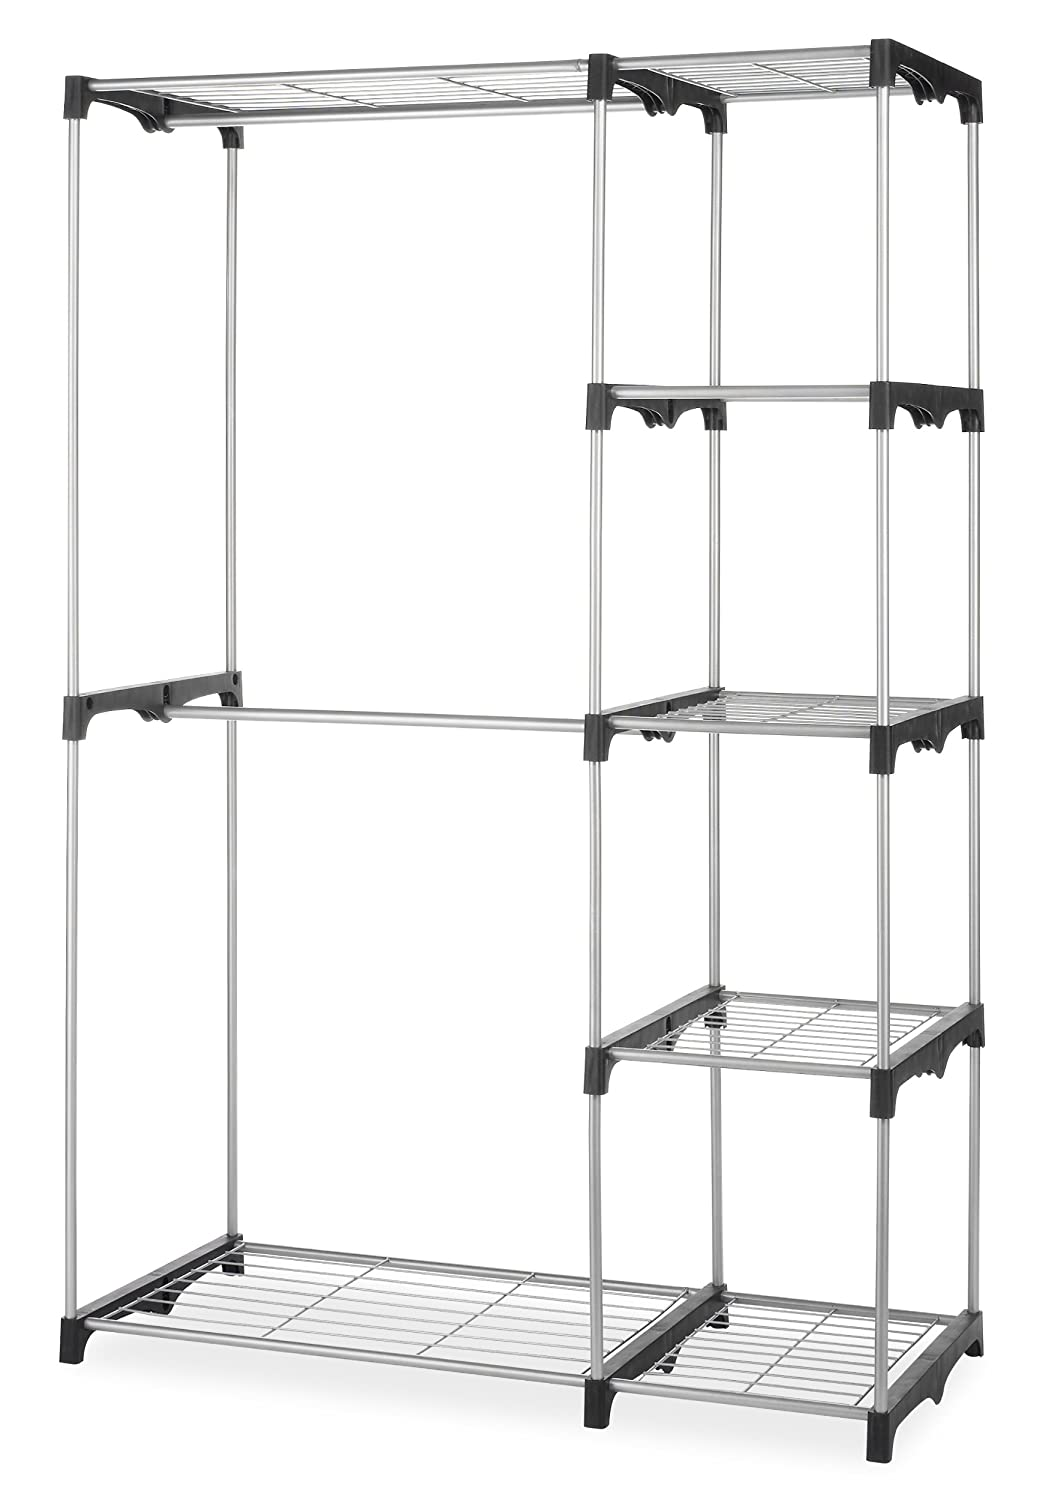 Whitmor  6779-3044  Double Rod Closet, Silver $41.49